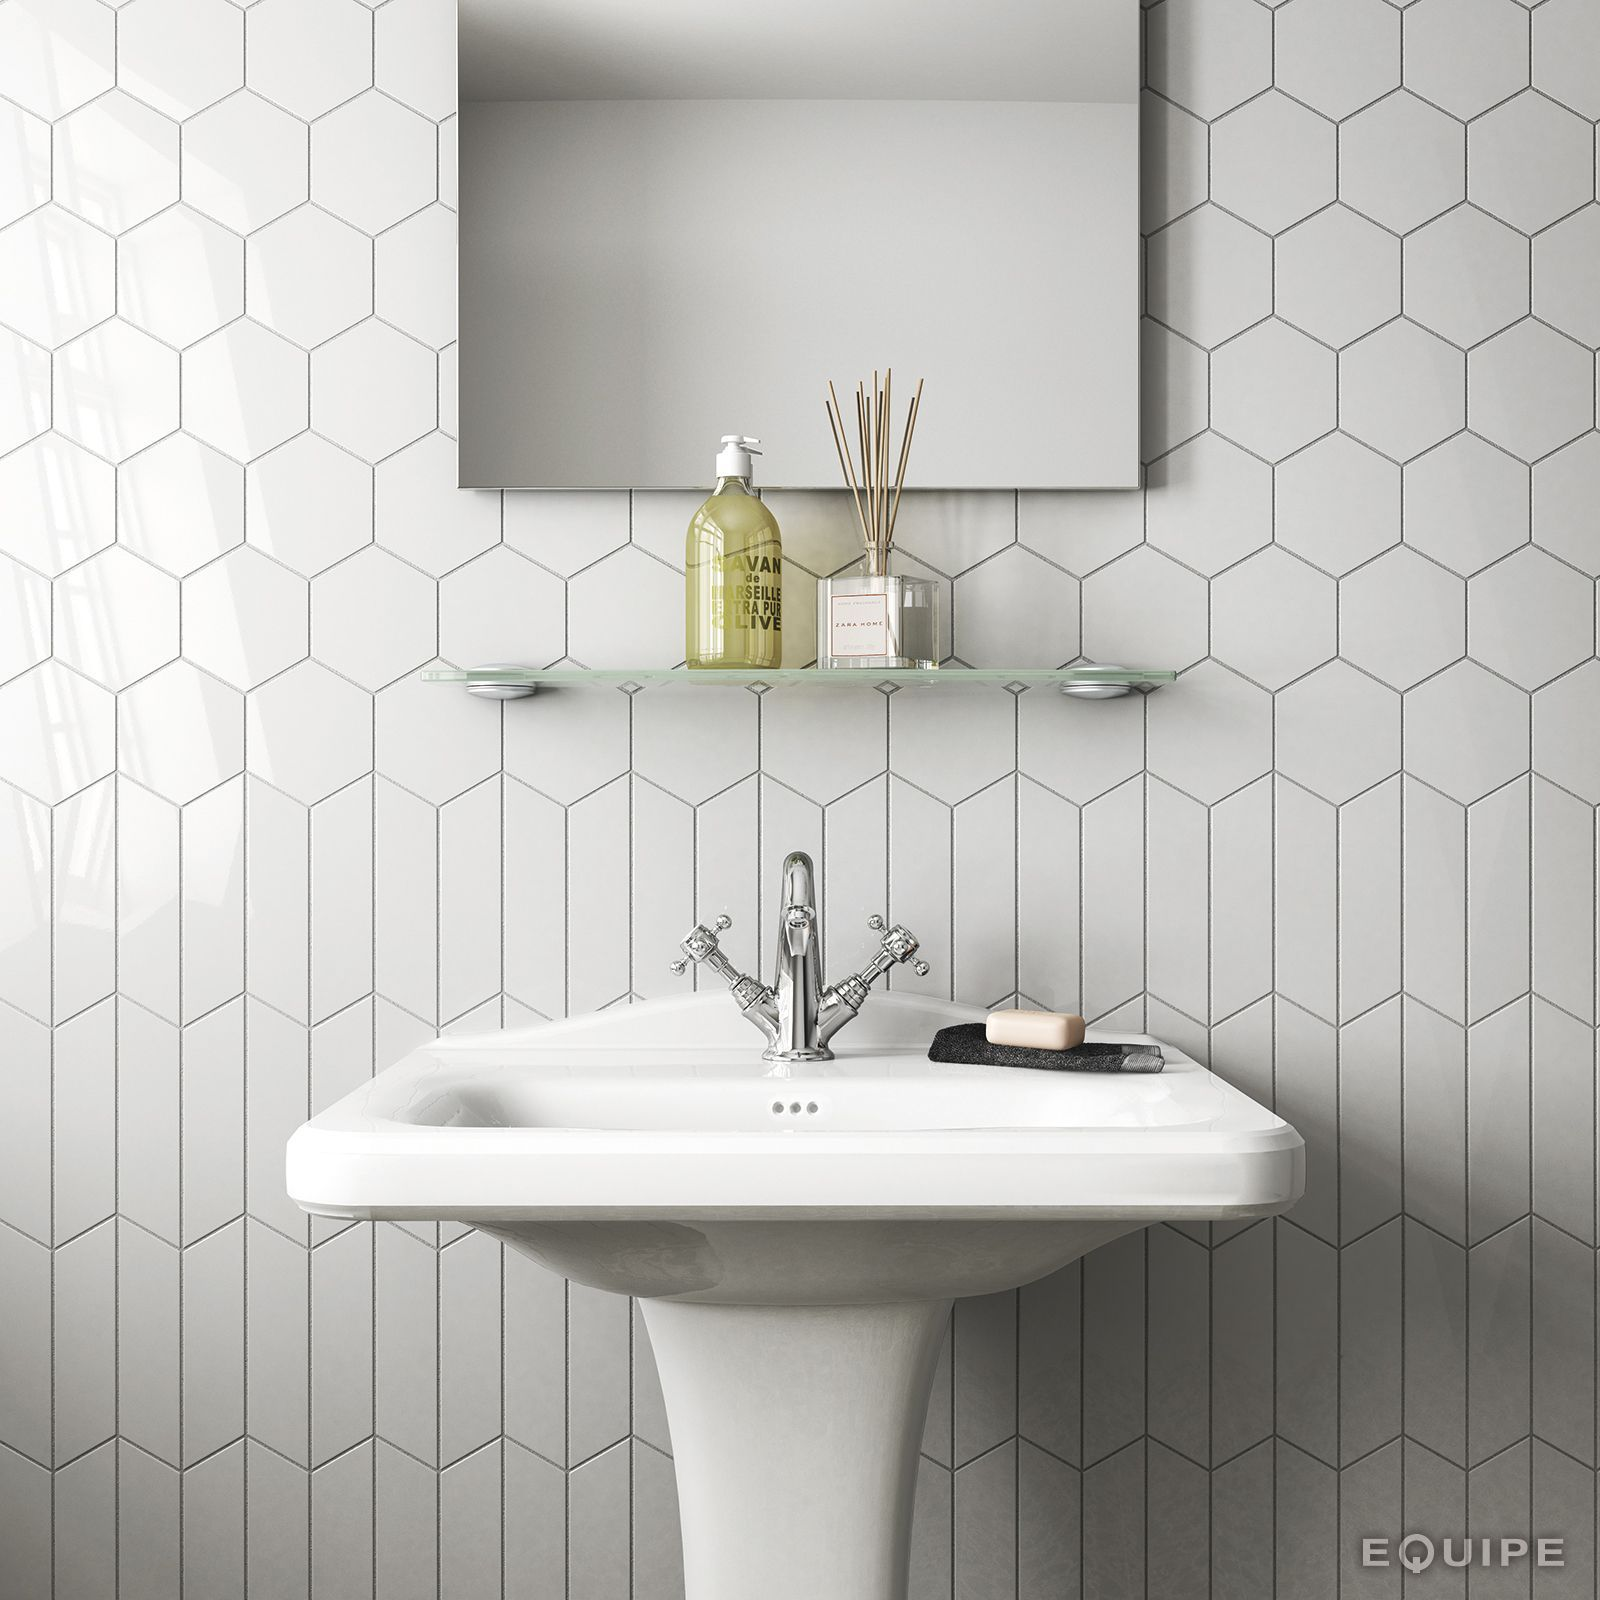 This Image Of A Bathroom Design Is Tessellation But Simplified Because The Tiles Fit In Between Patterned Bathroom Tiles Beautiful Tile Bathroom Tile Bathroom